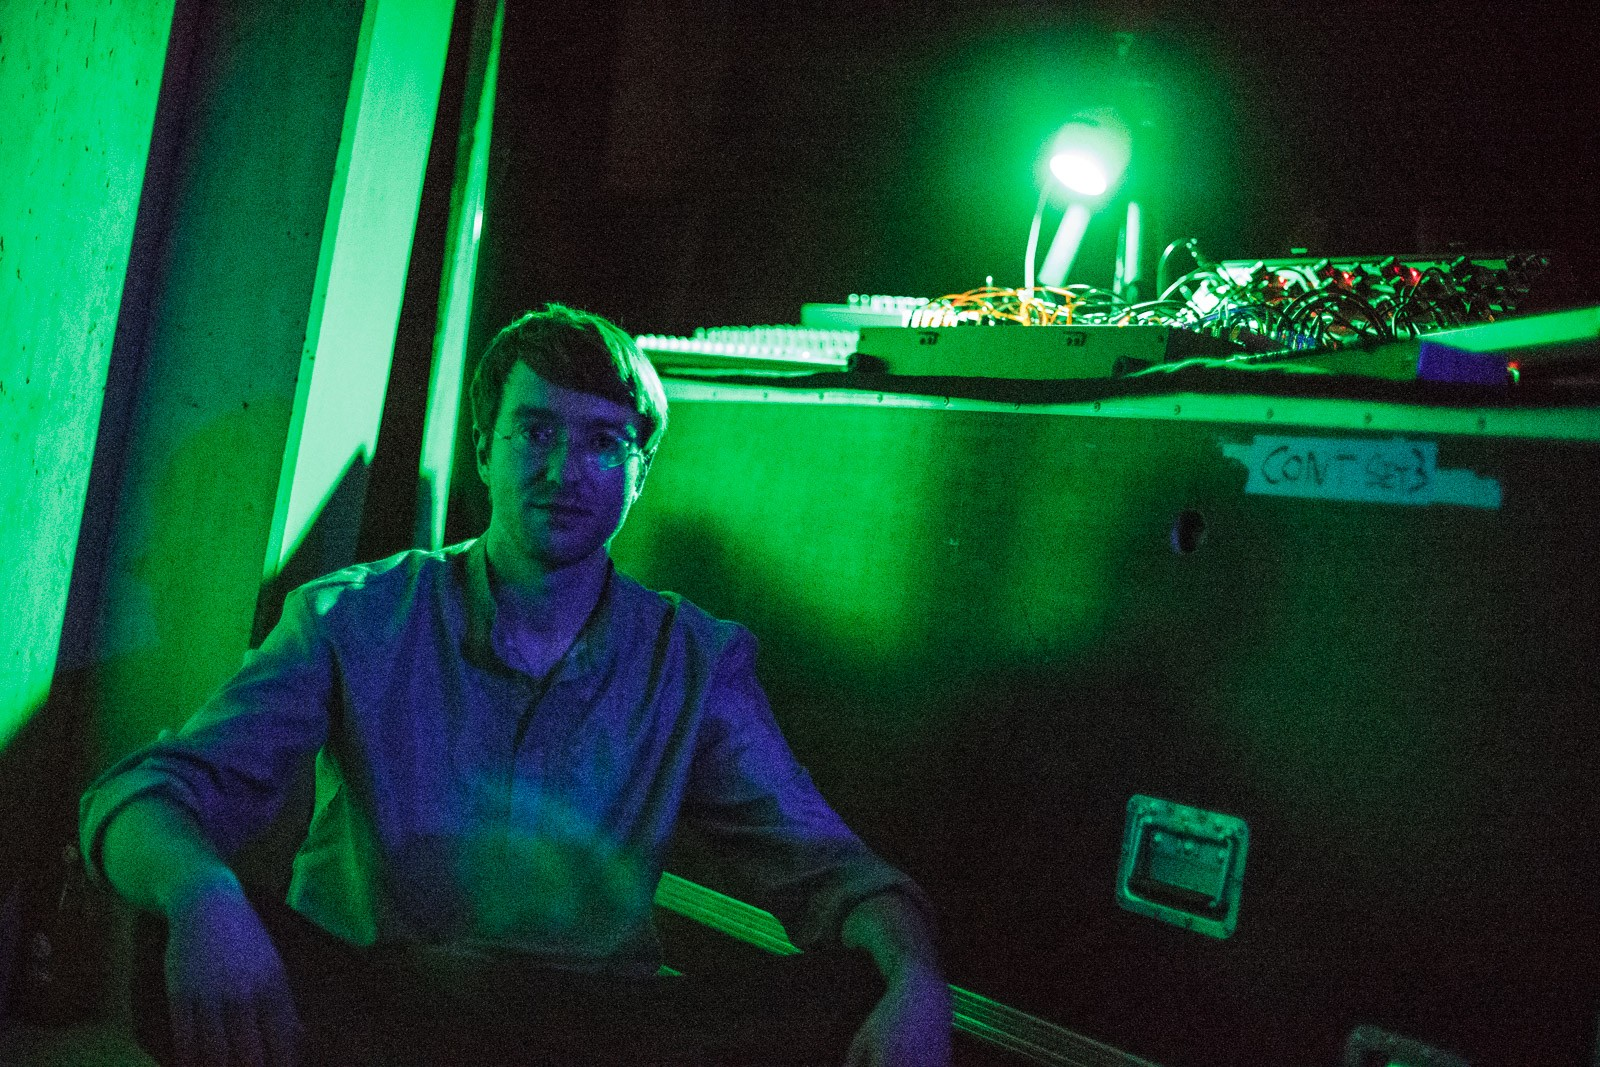 portrait of electronic musician in green and blue light